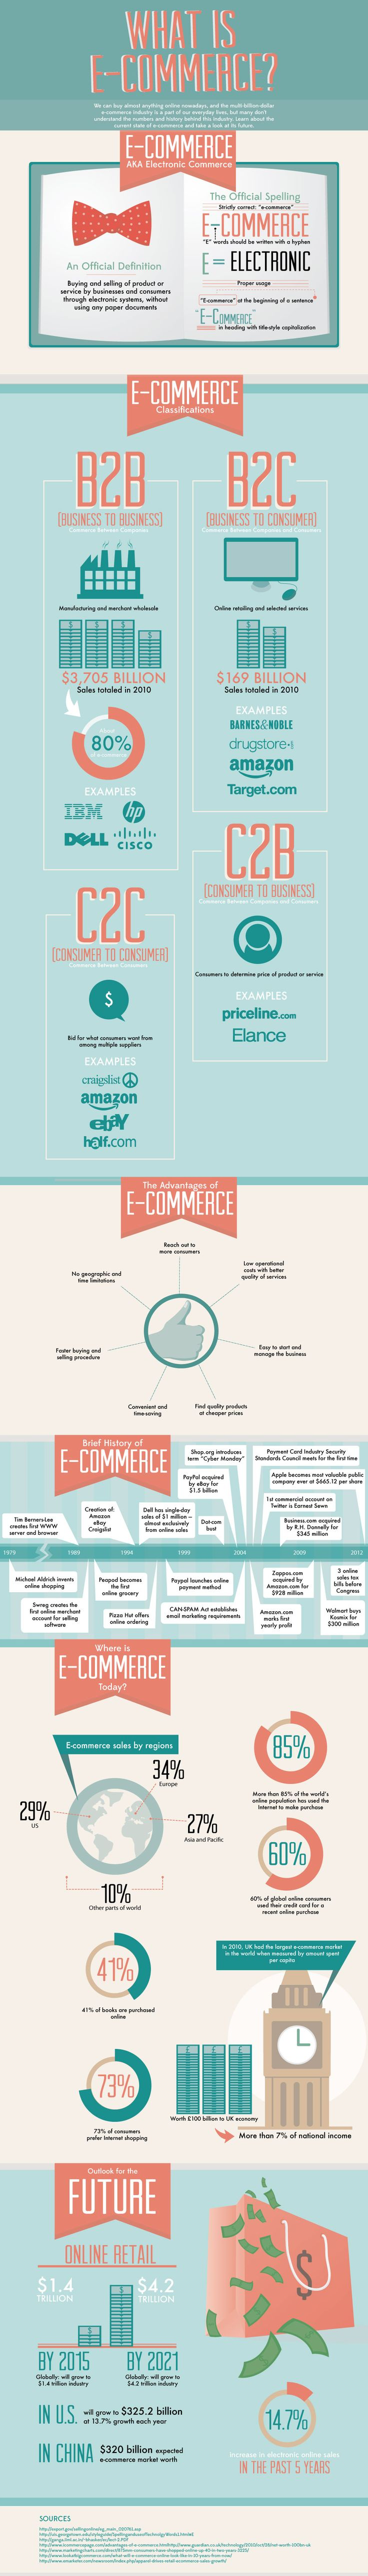 What Is E-Commerce? [Infographic]